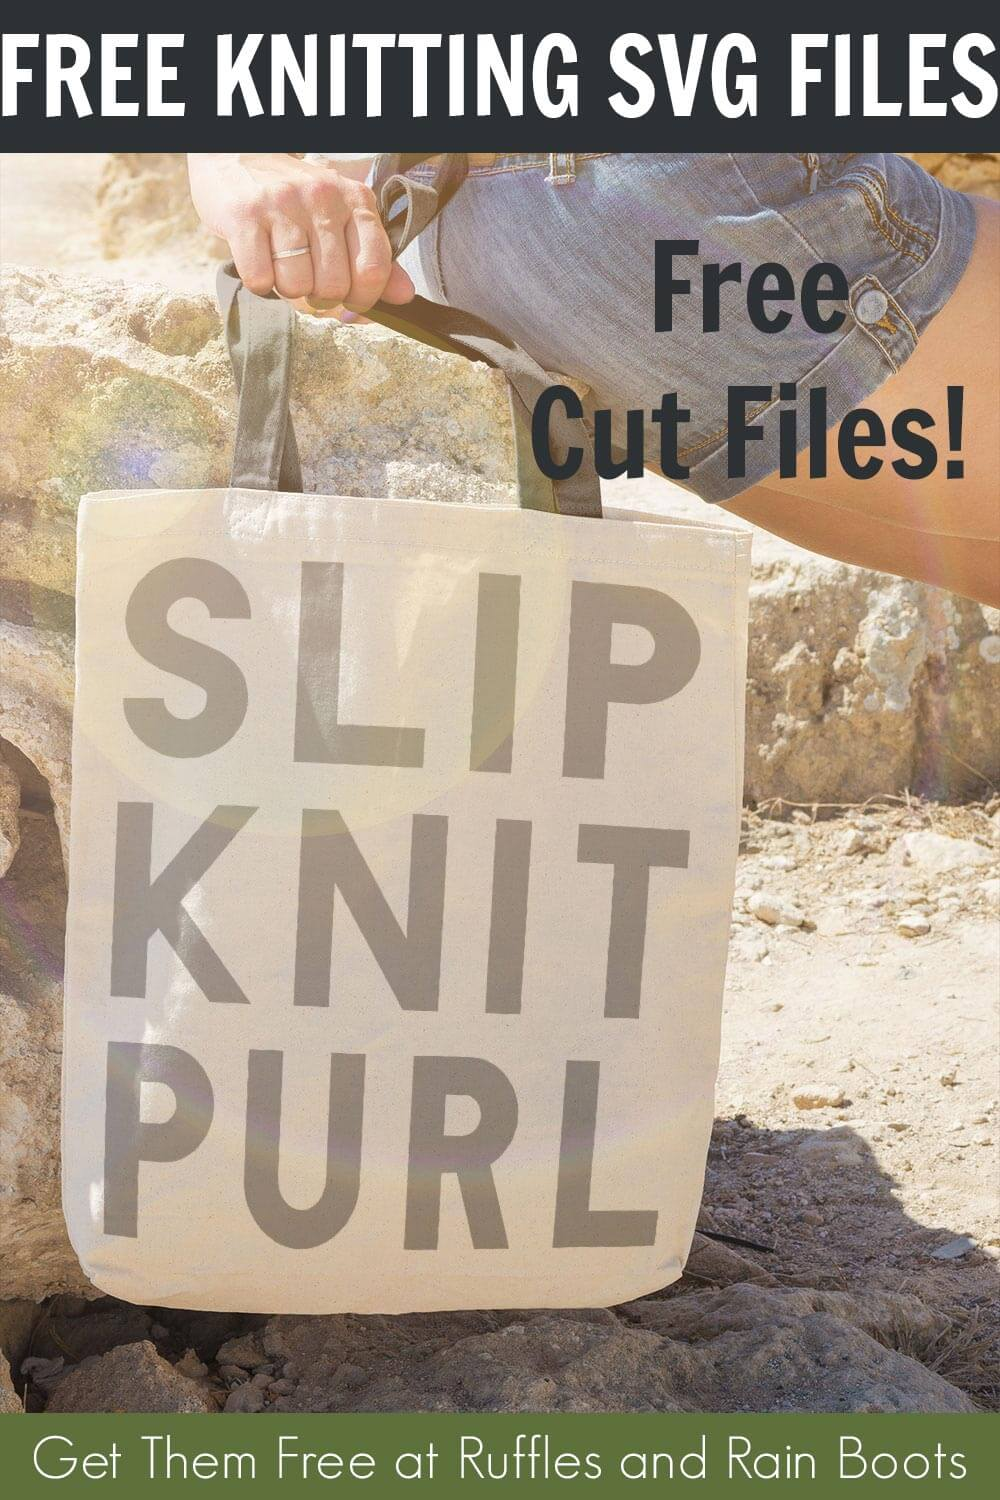 Fun Knitting SVG for Crafters on a canvas bag held by a lady sitting on a rock with text which reads free knitting svg files free cut files!